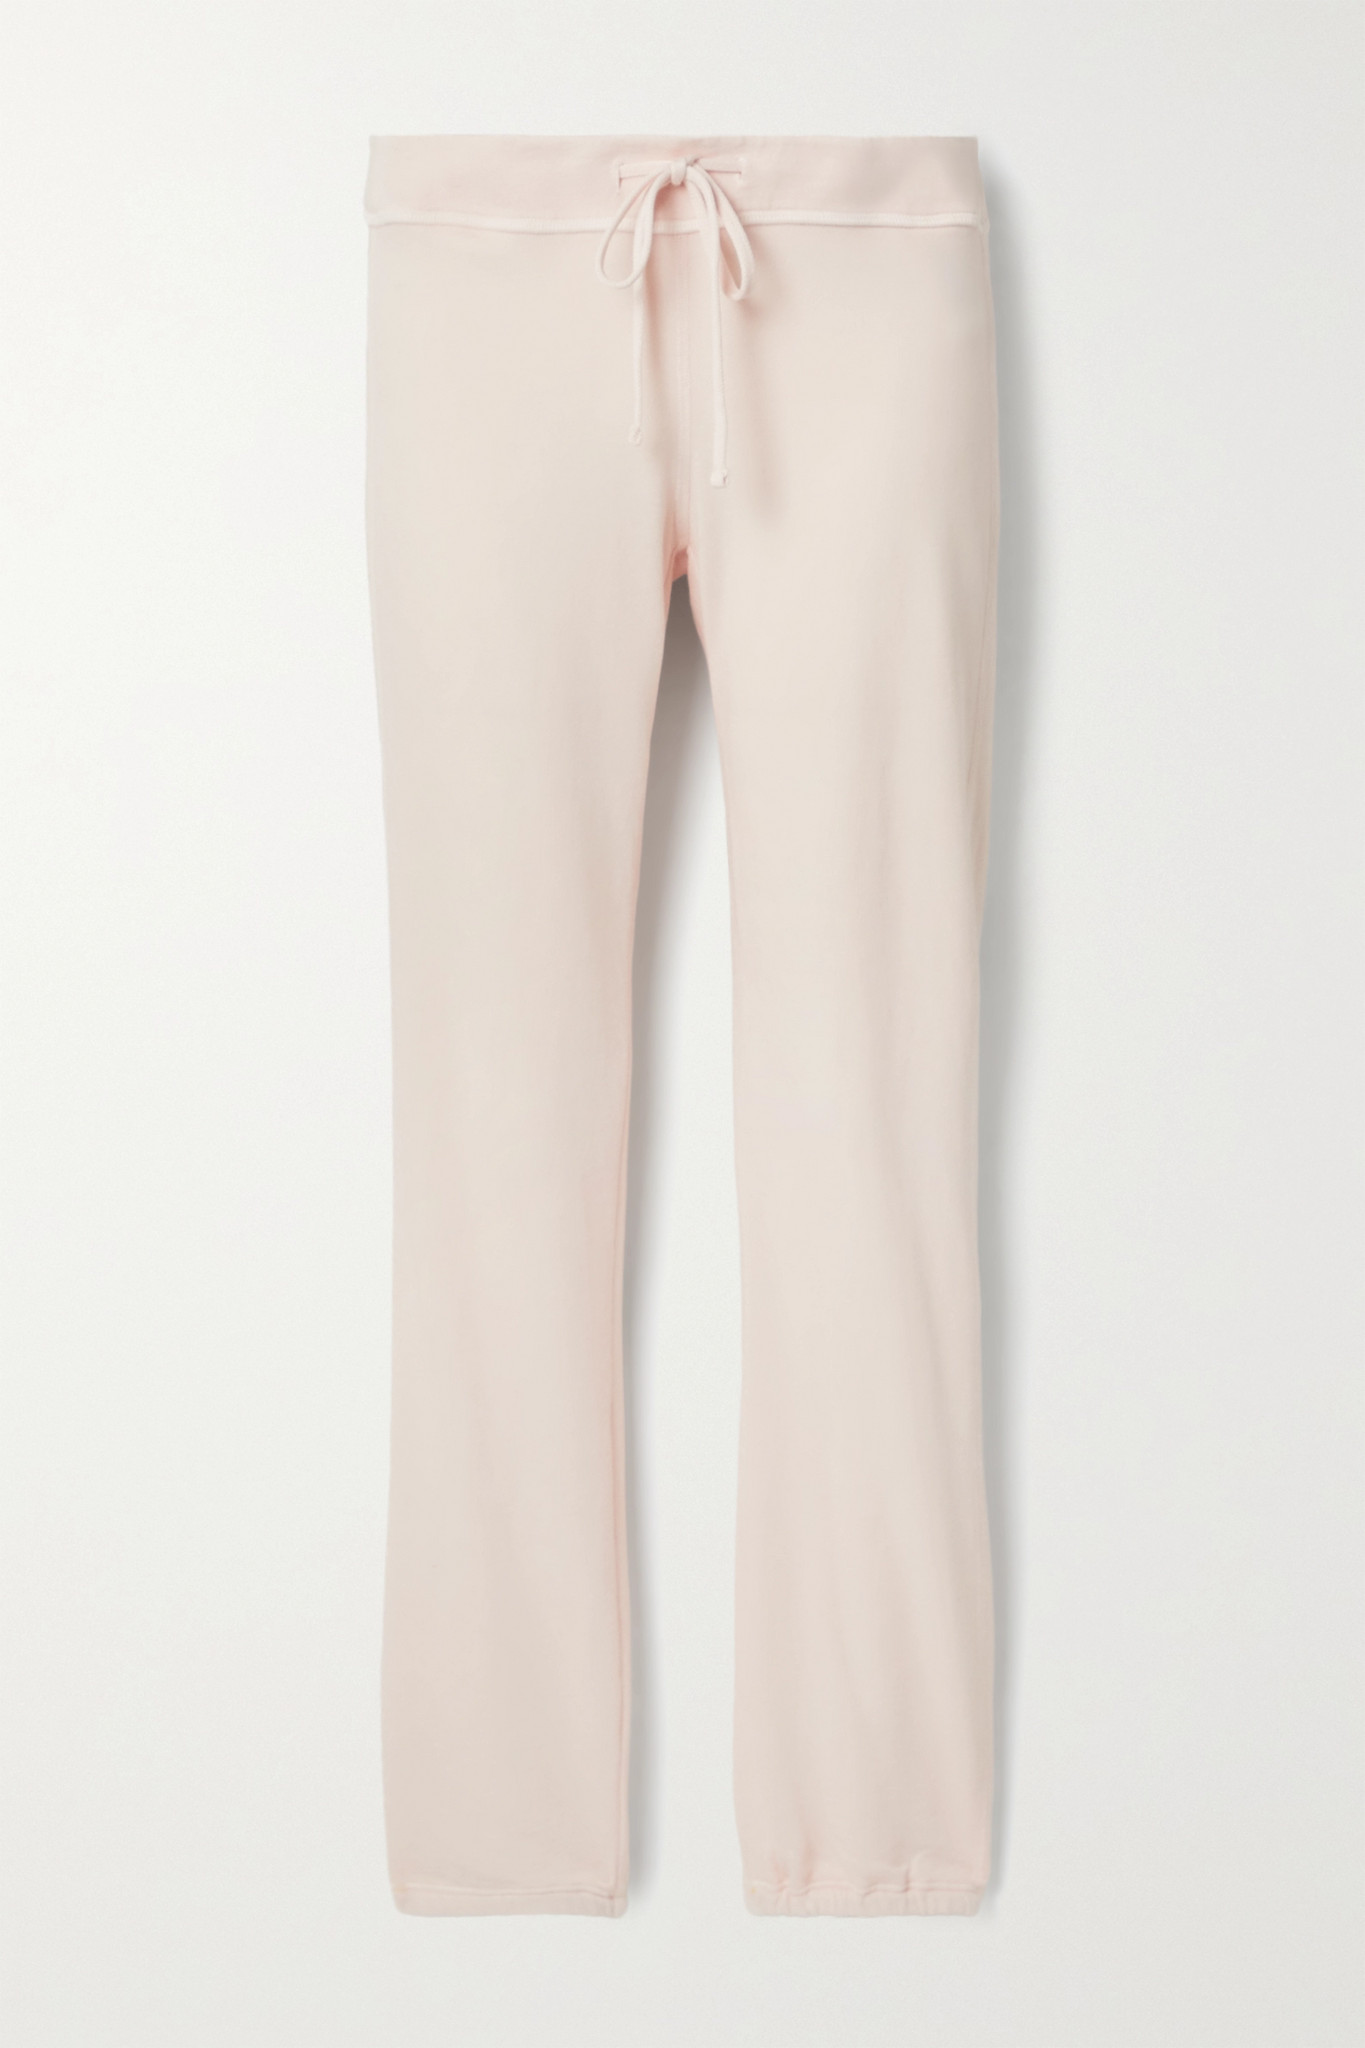 JAMES PERSE - Genie Supima Cotton-terry Track Pants - Pink - 3